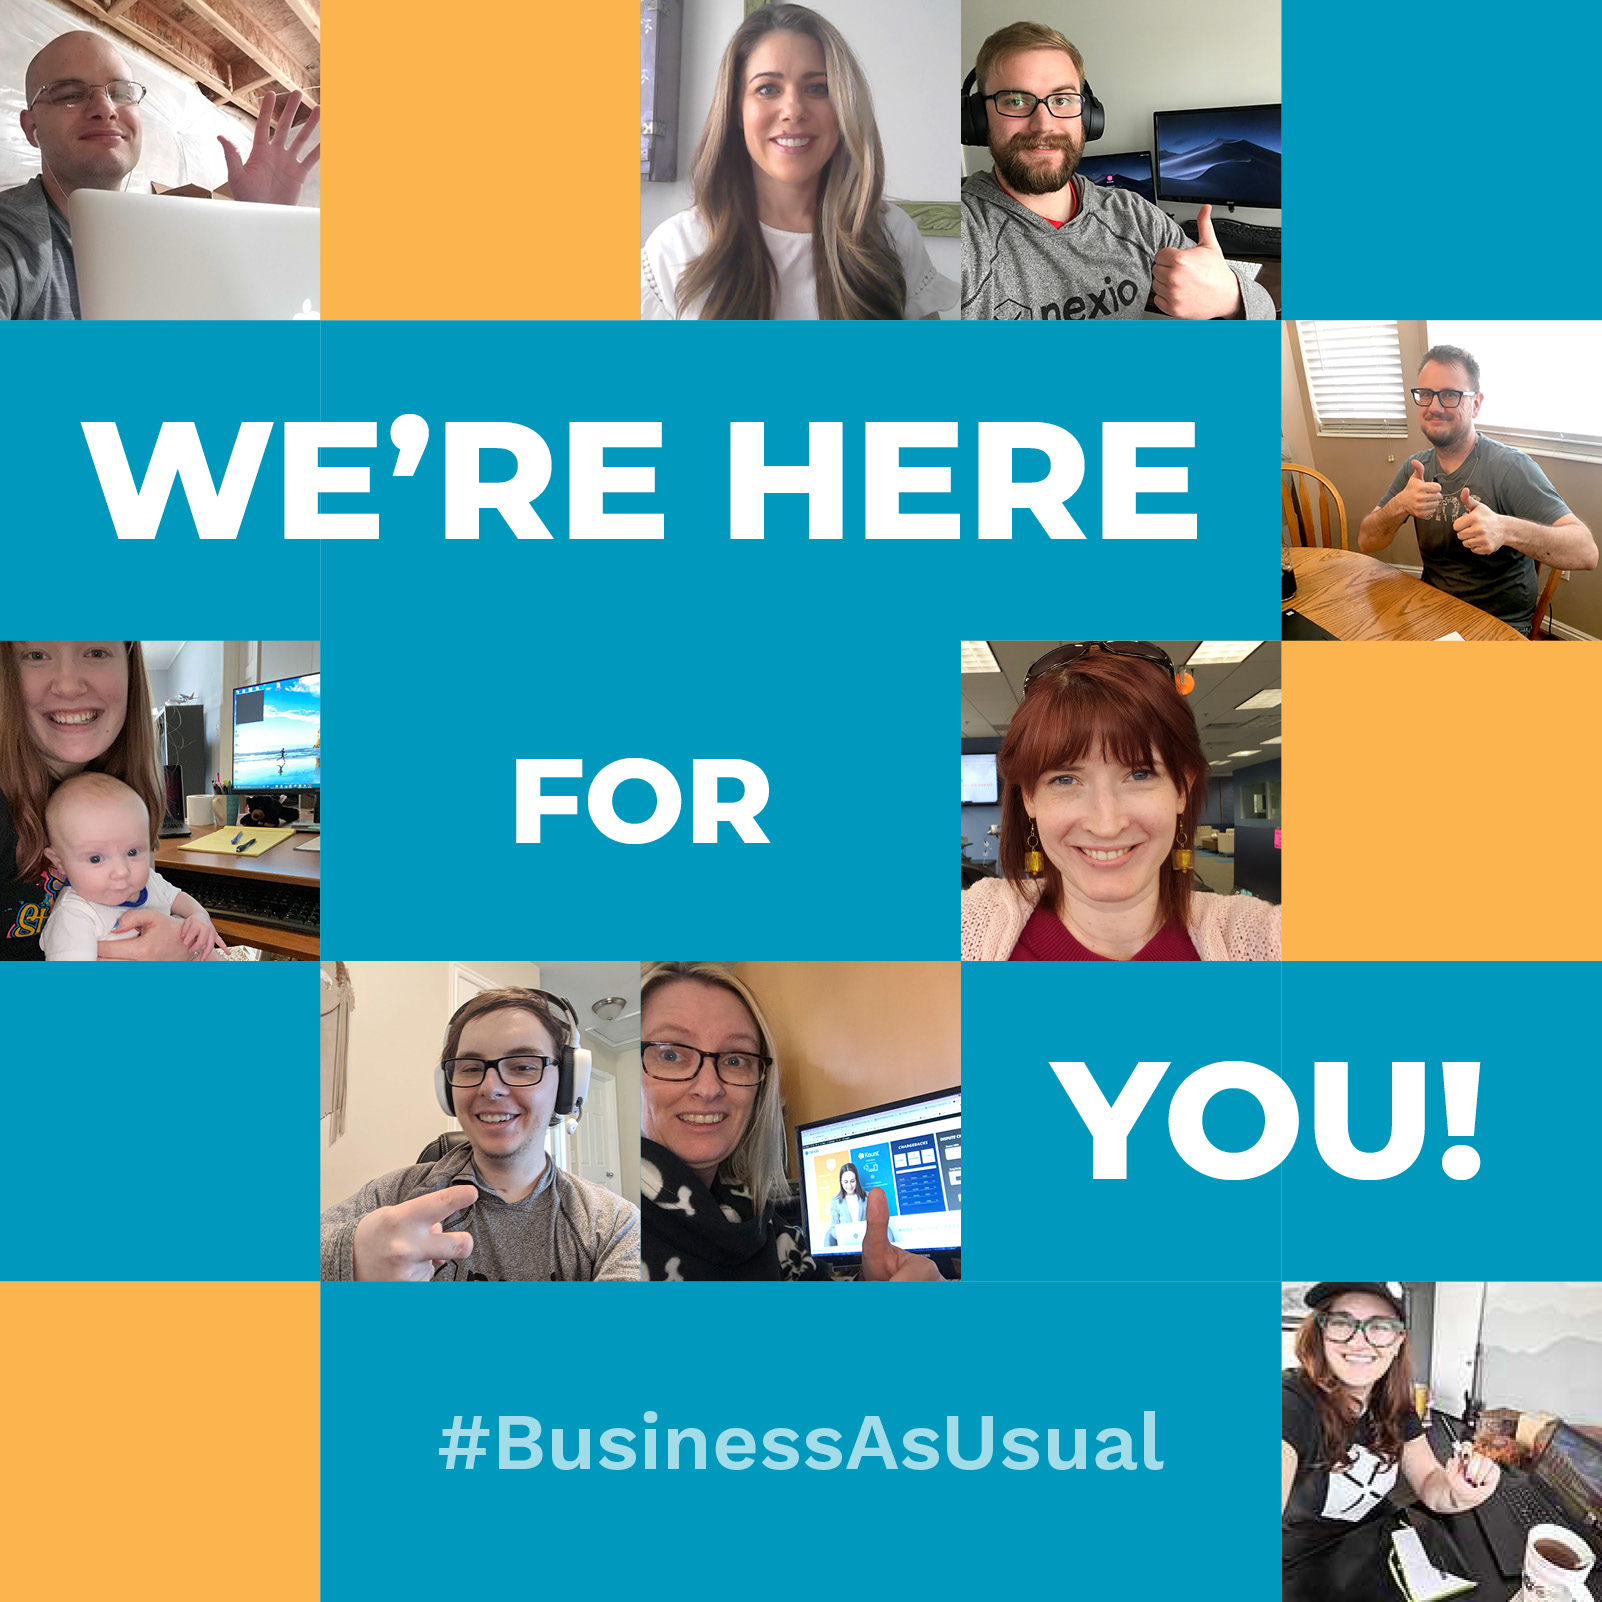 We're Here for You: Business As Usual While Working from Home